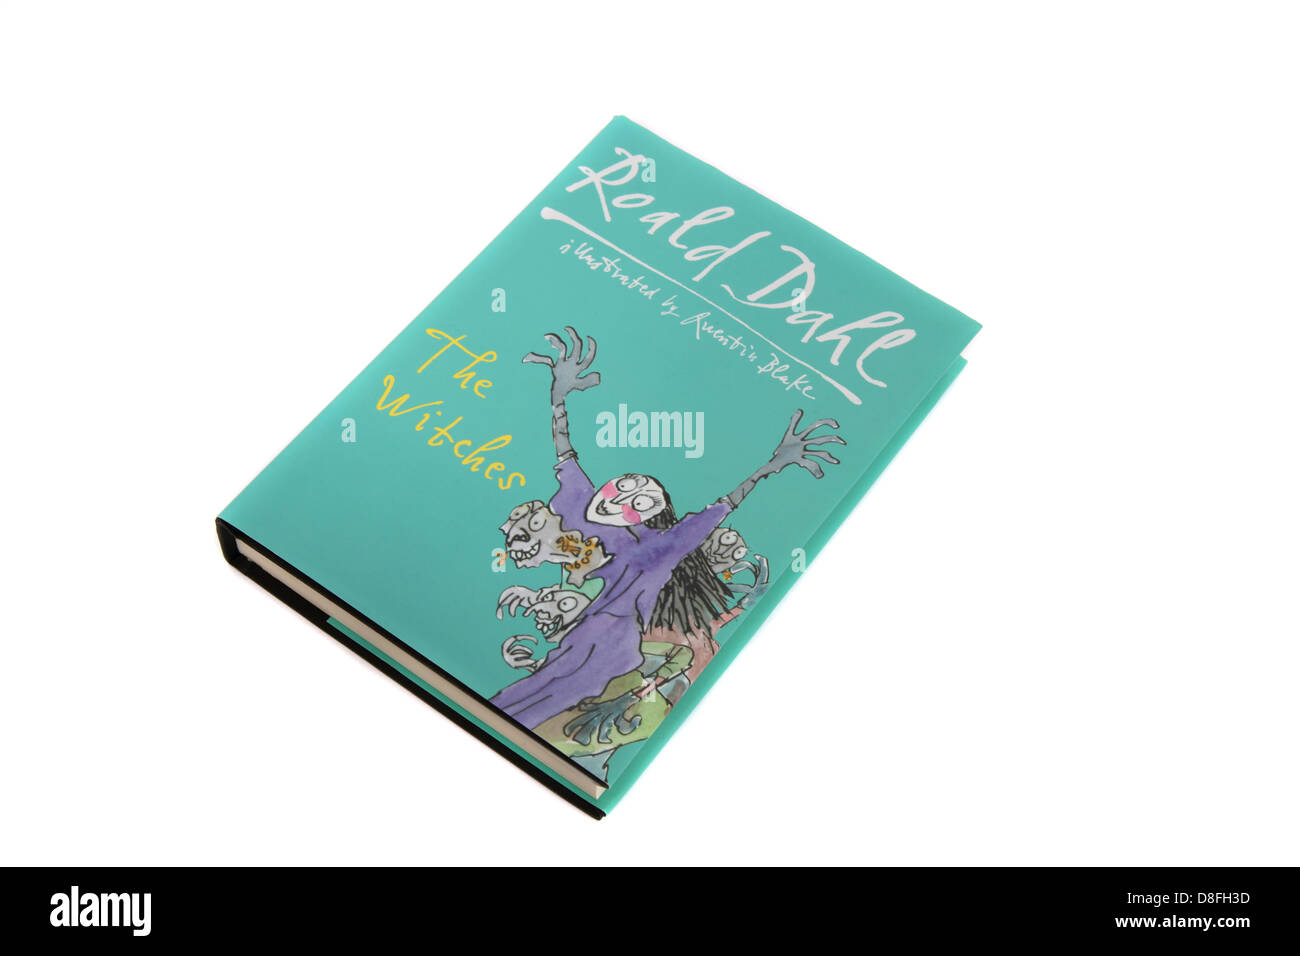 The Witches, a children's book by Roald Dahl. Stock Photo